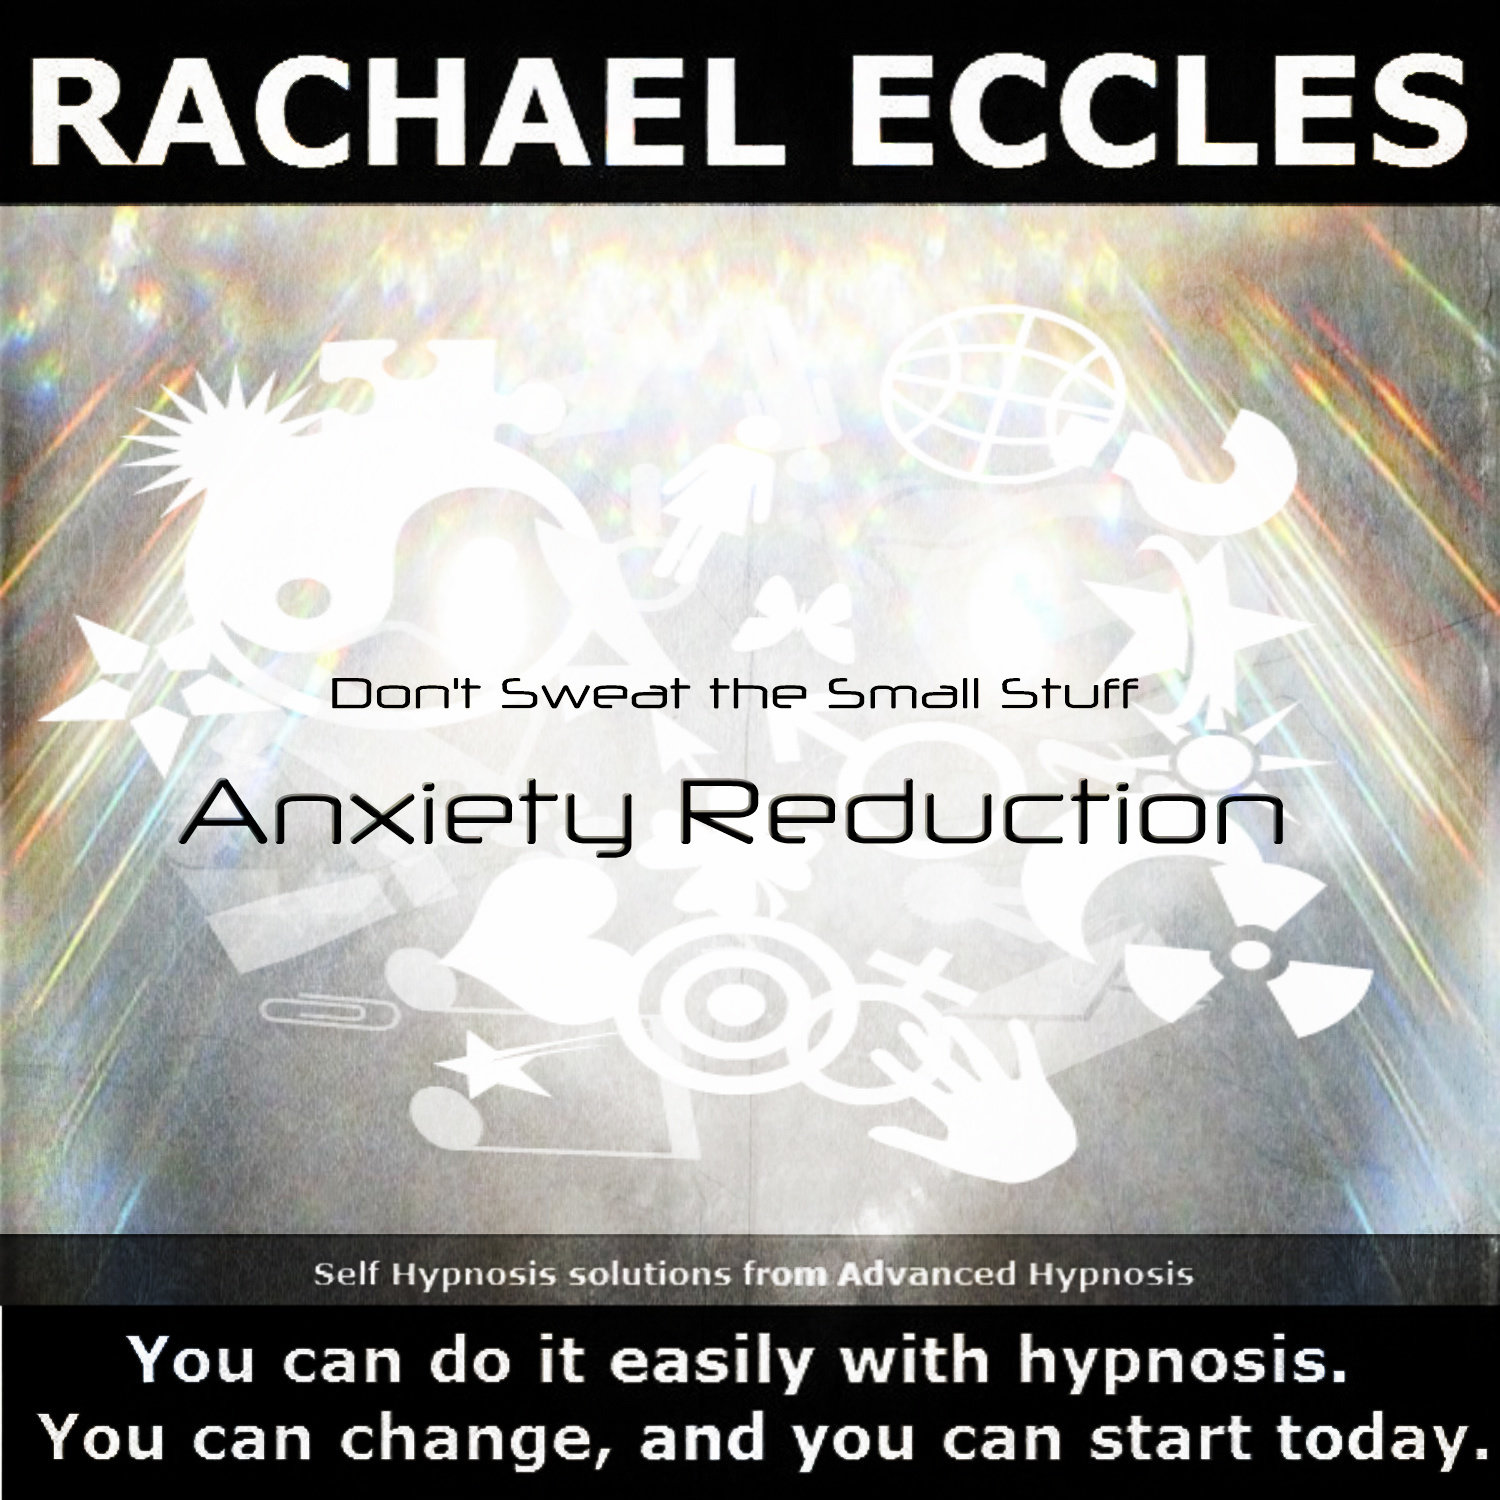 Don't Sweat The Small Stuff, Stop worrying Meditation Hypnotherapy, Hypnosis Download or CD